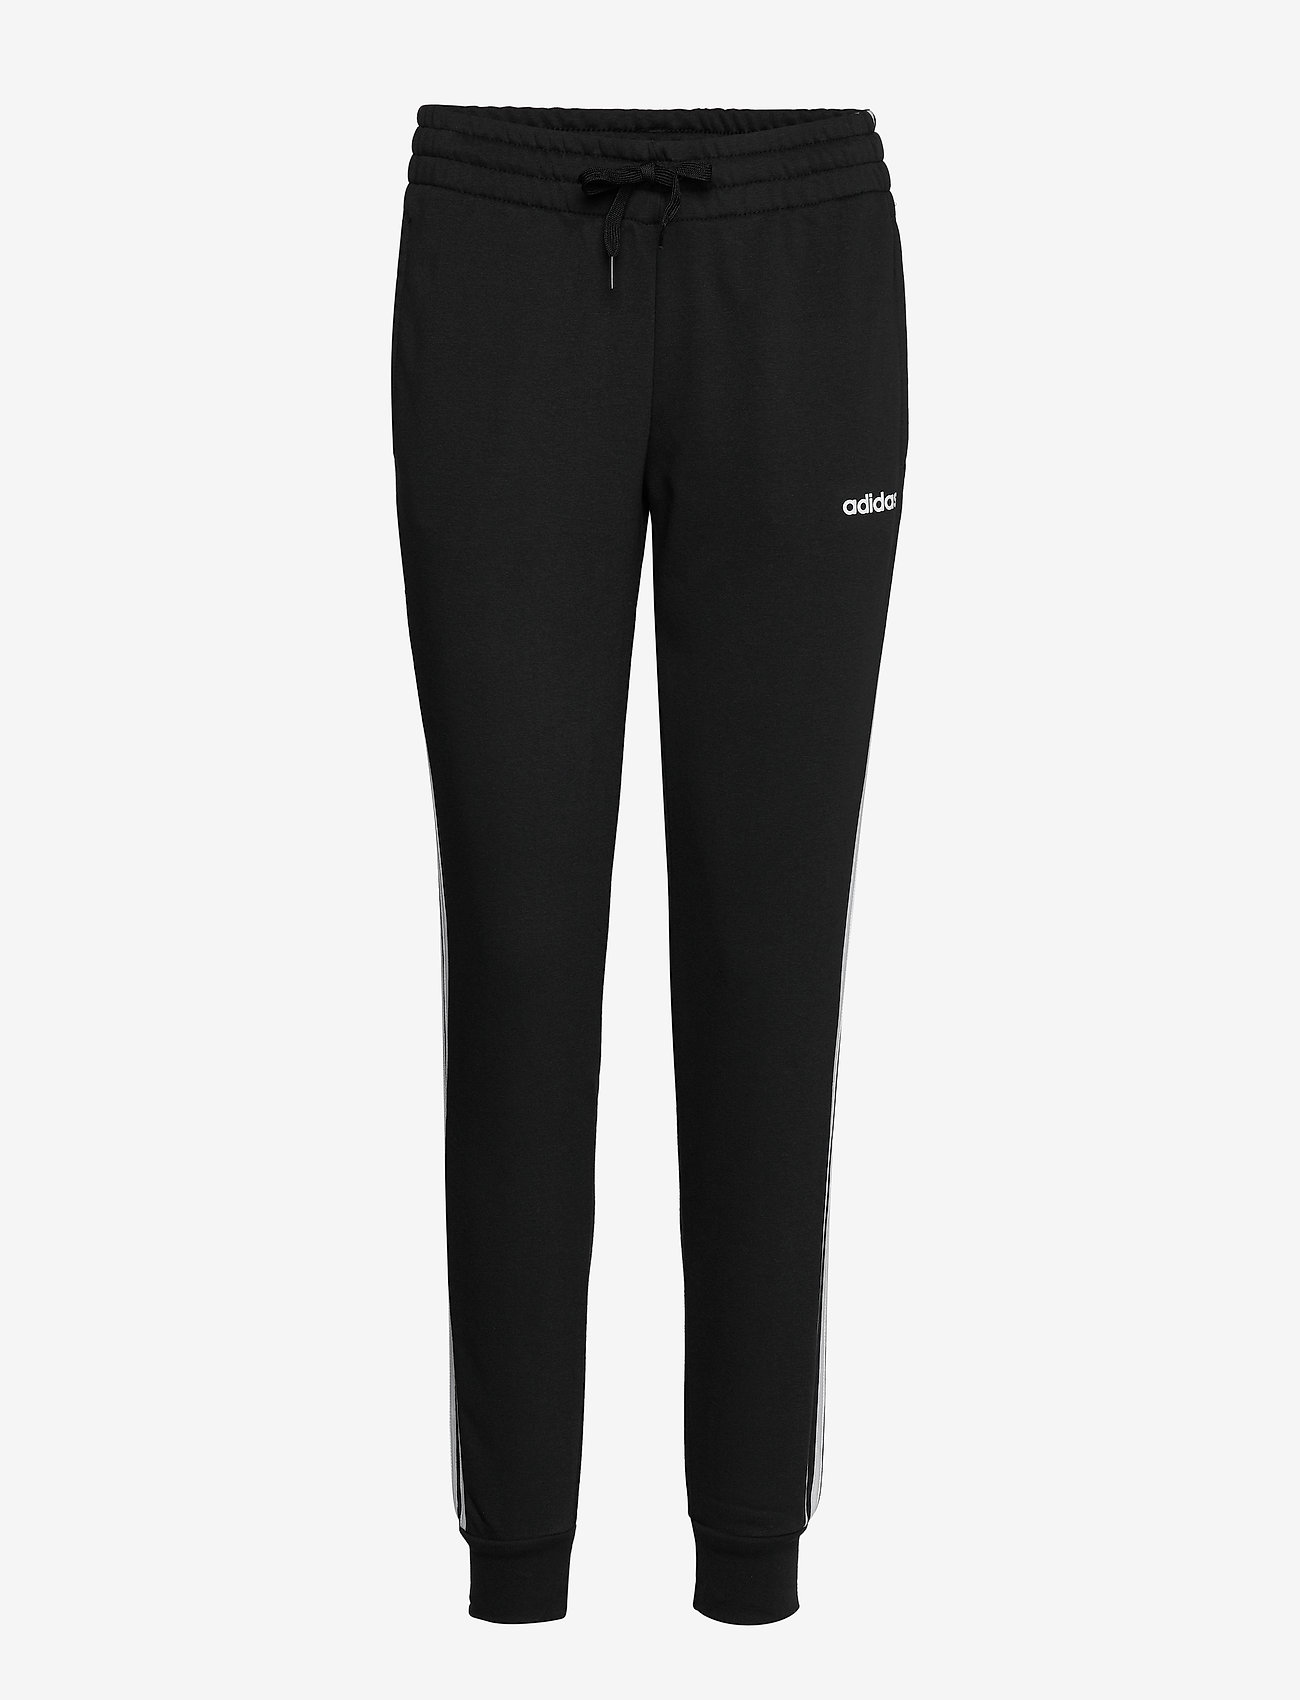 W E 3s Pant (Black/white) - adidas Performance wgyasu